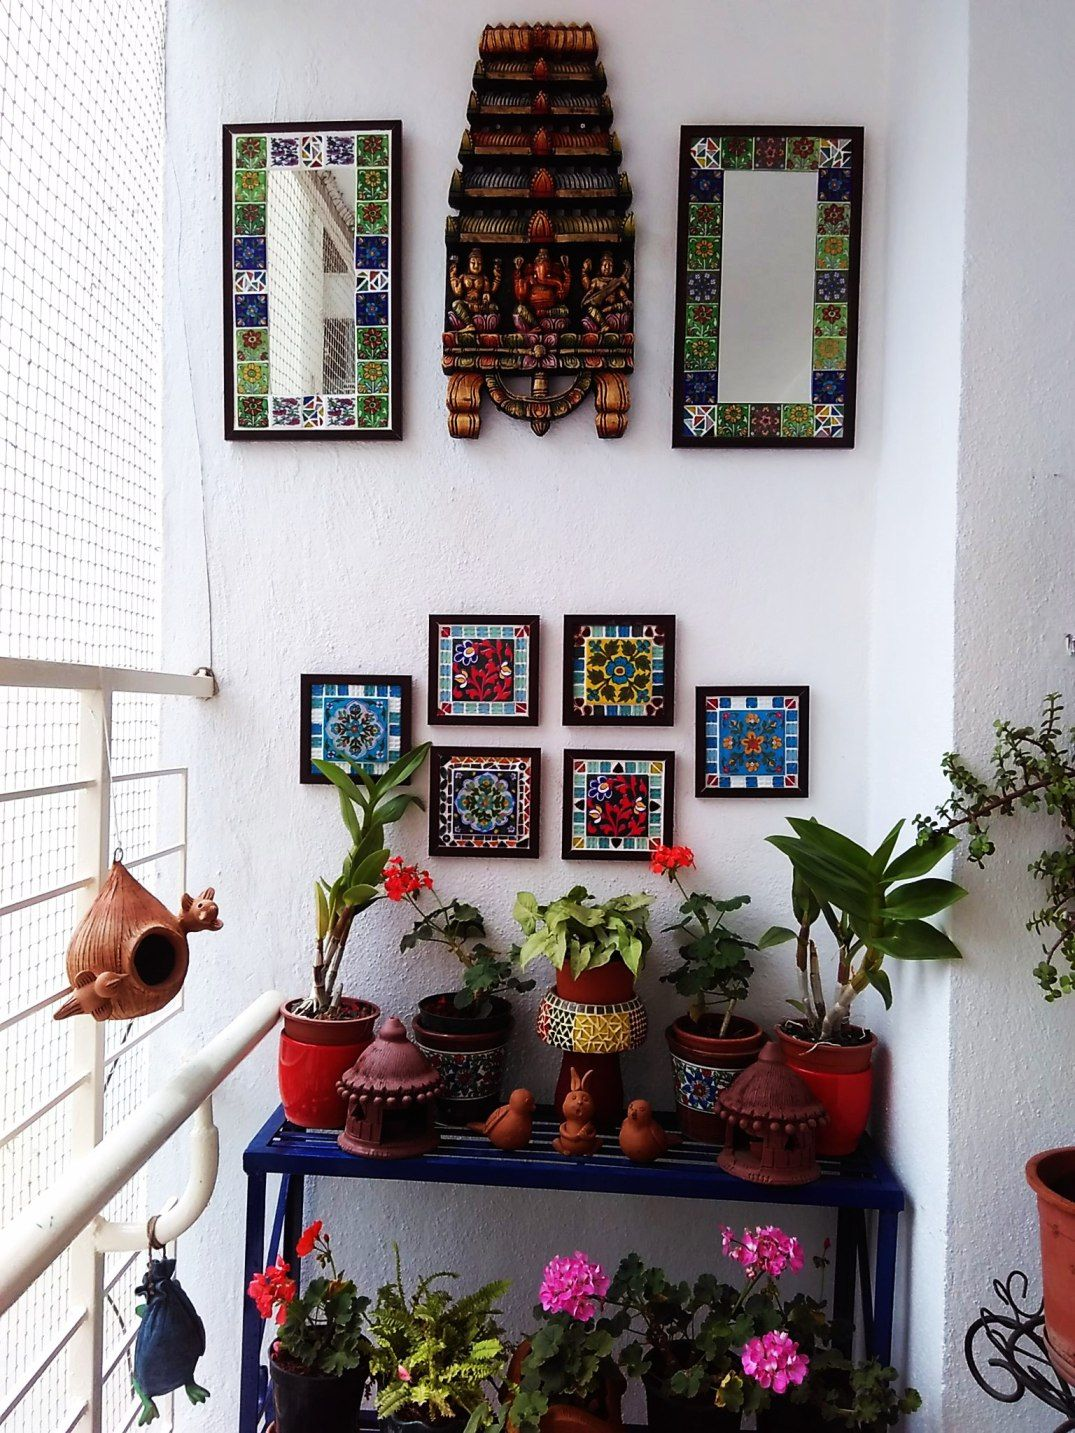 Small Apartment Wall Decor Pin By Sami Rakesh On Balcony Decor Mini Garden In 2019